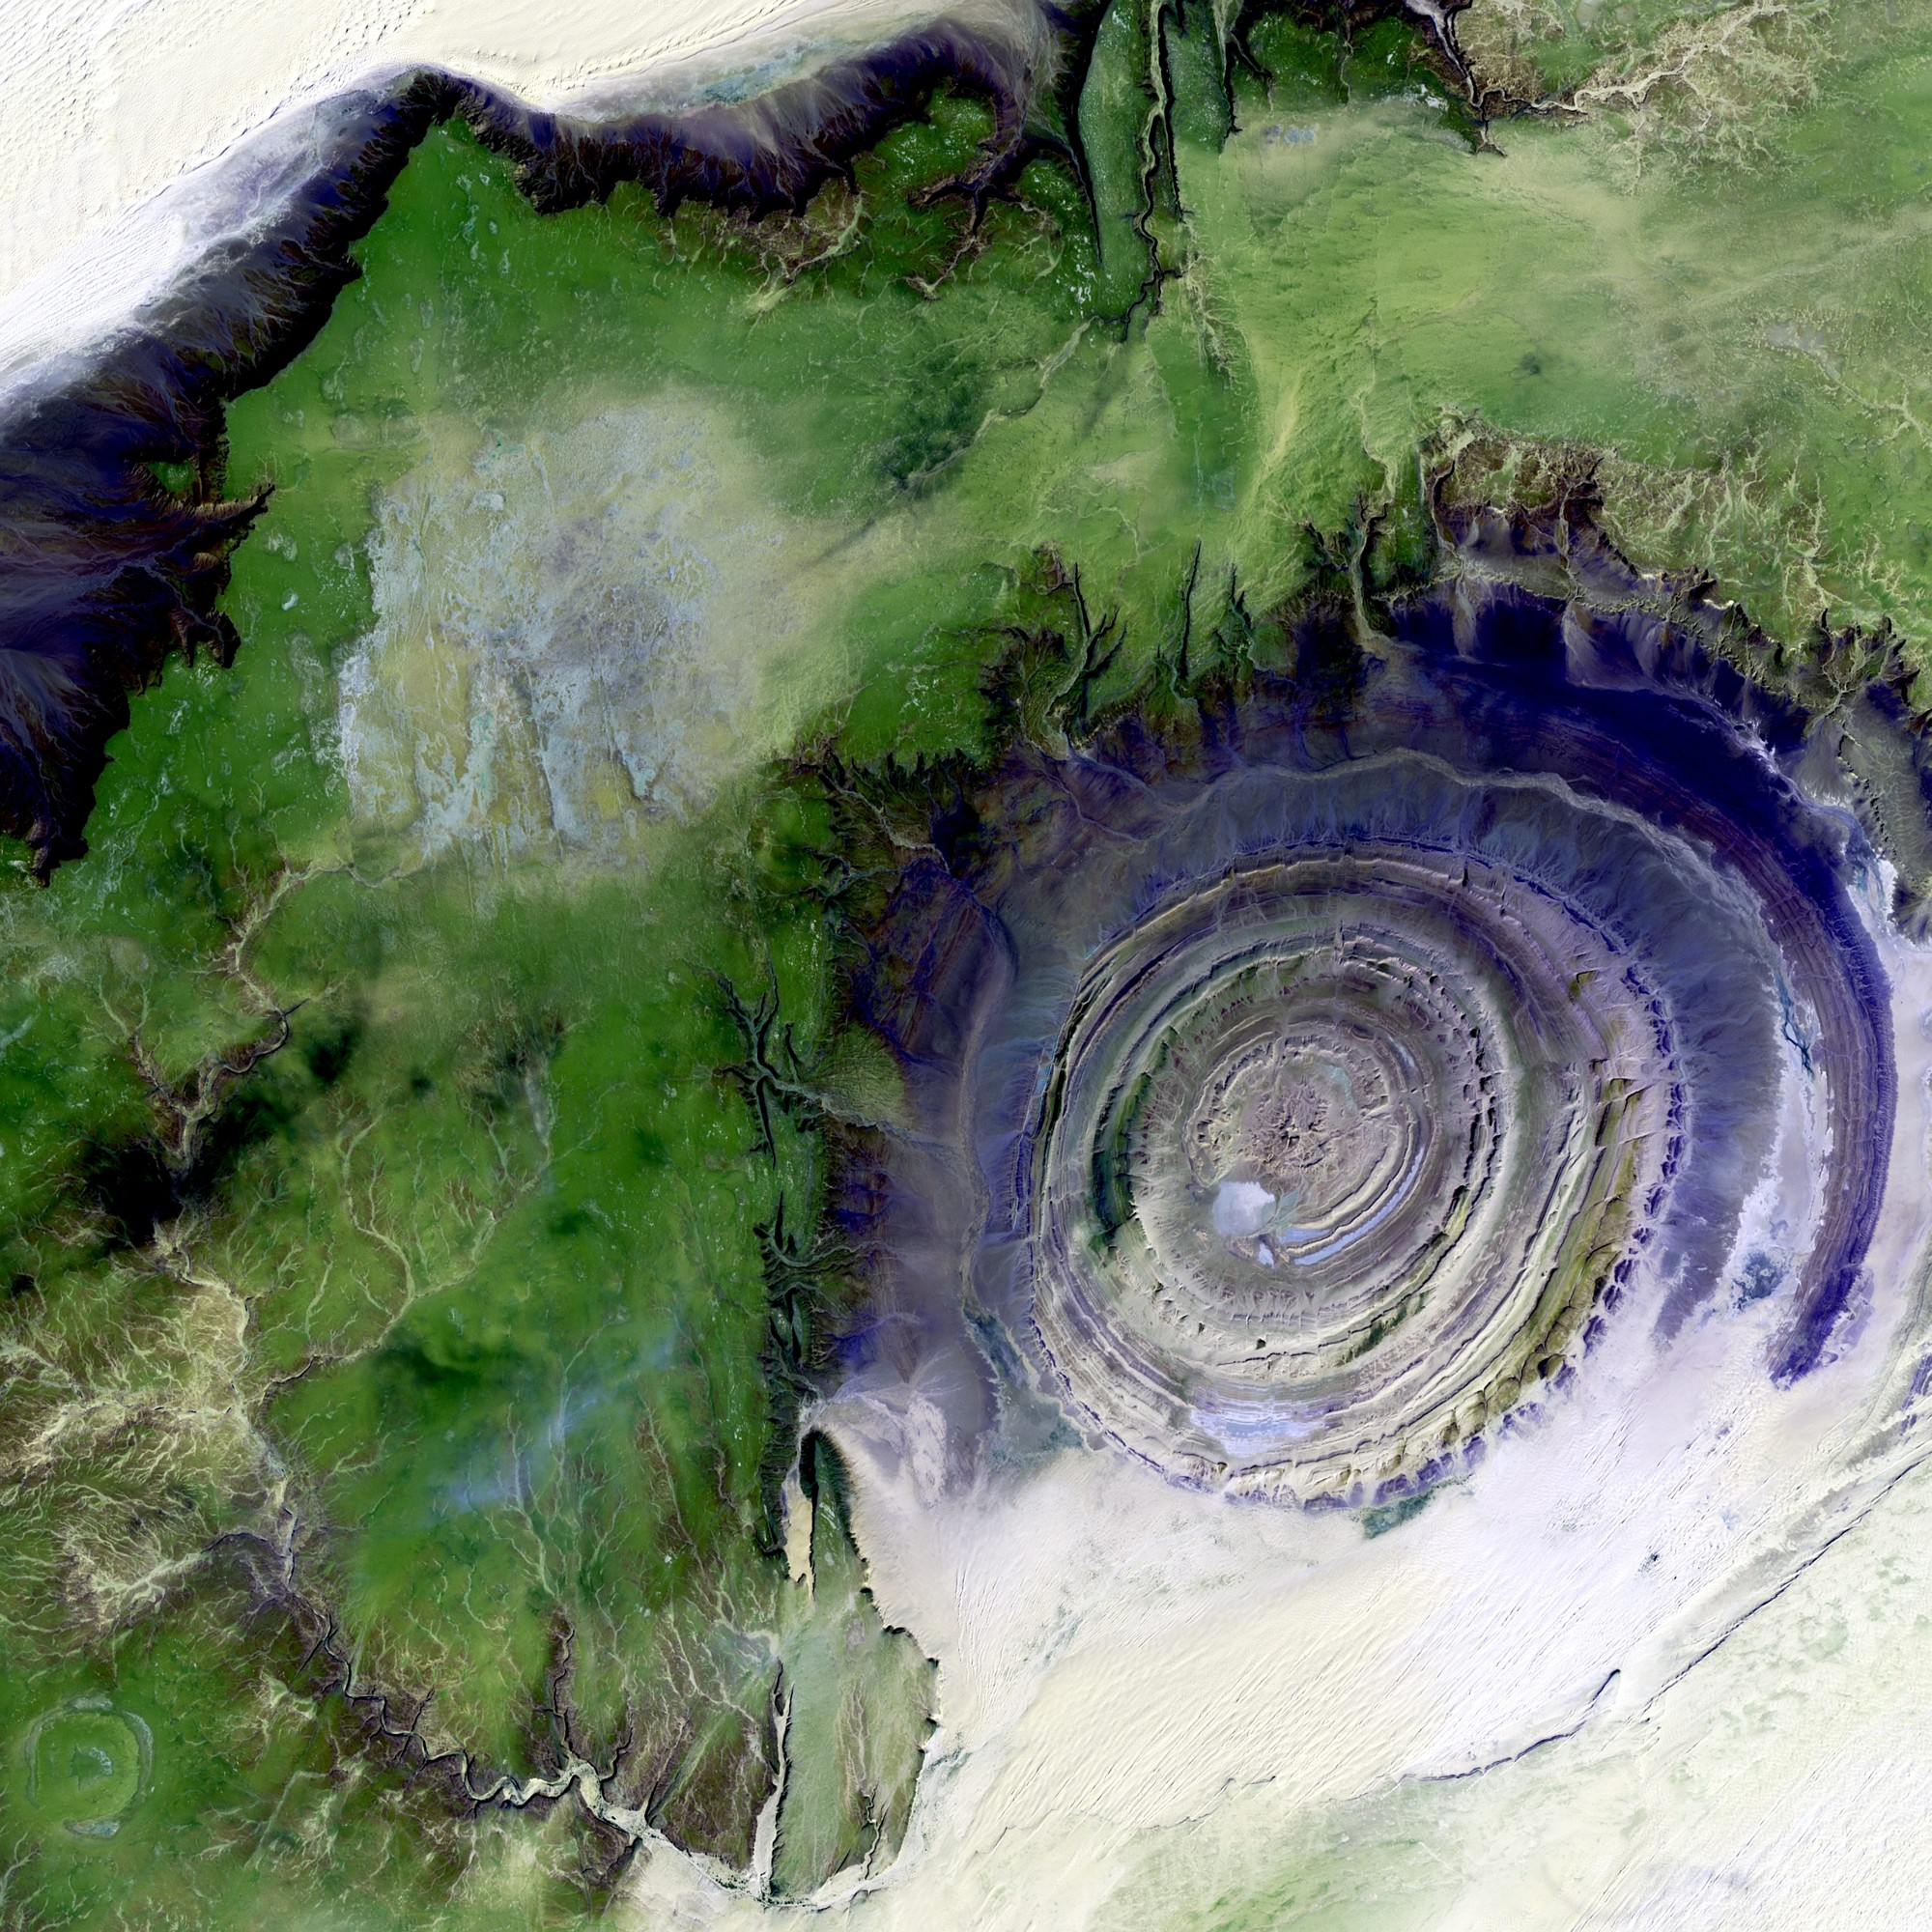 Richat Structure, Eye of The Sahara Desert, Mauritania